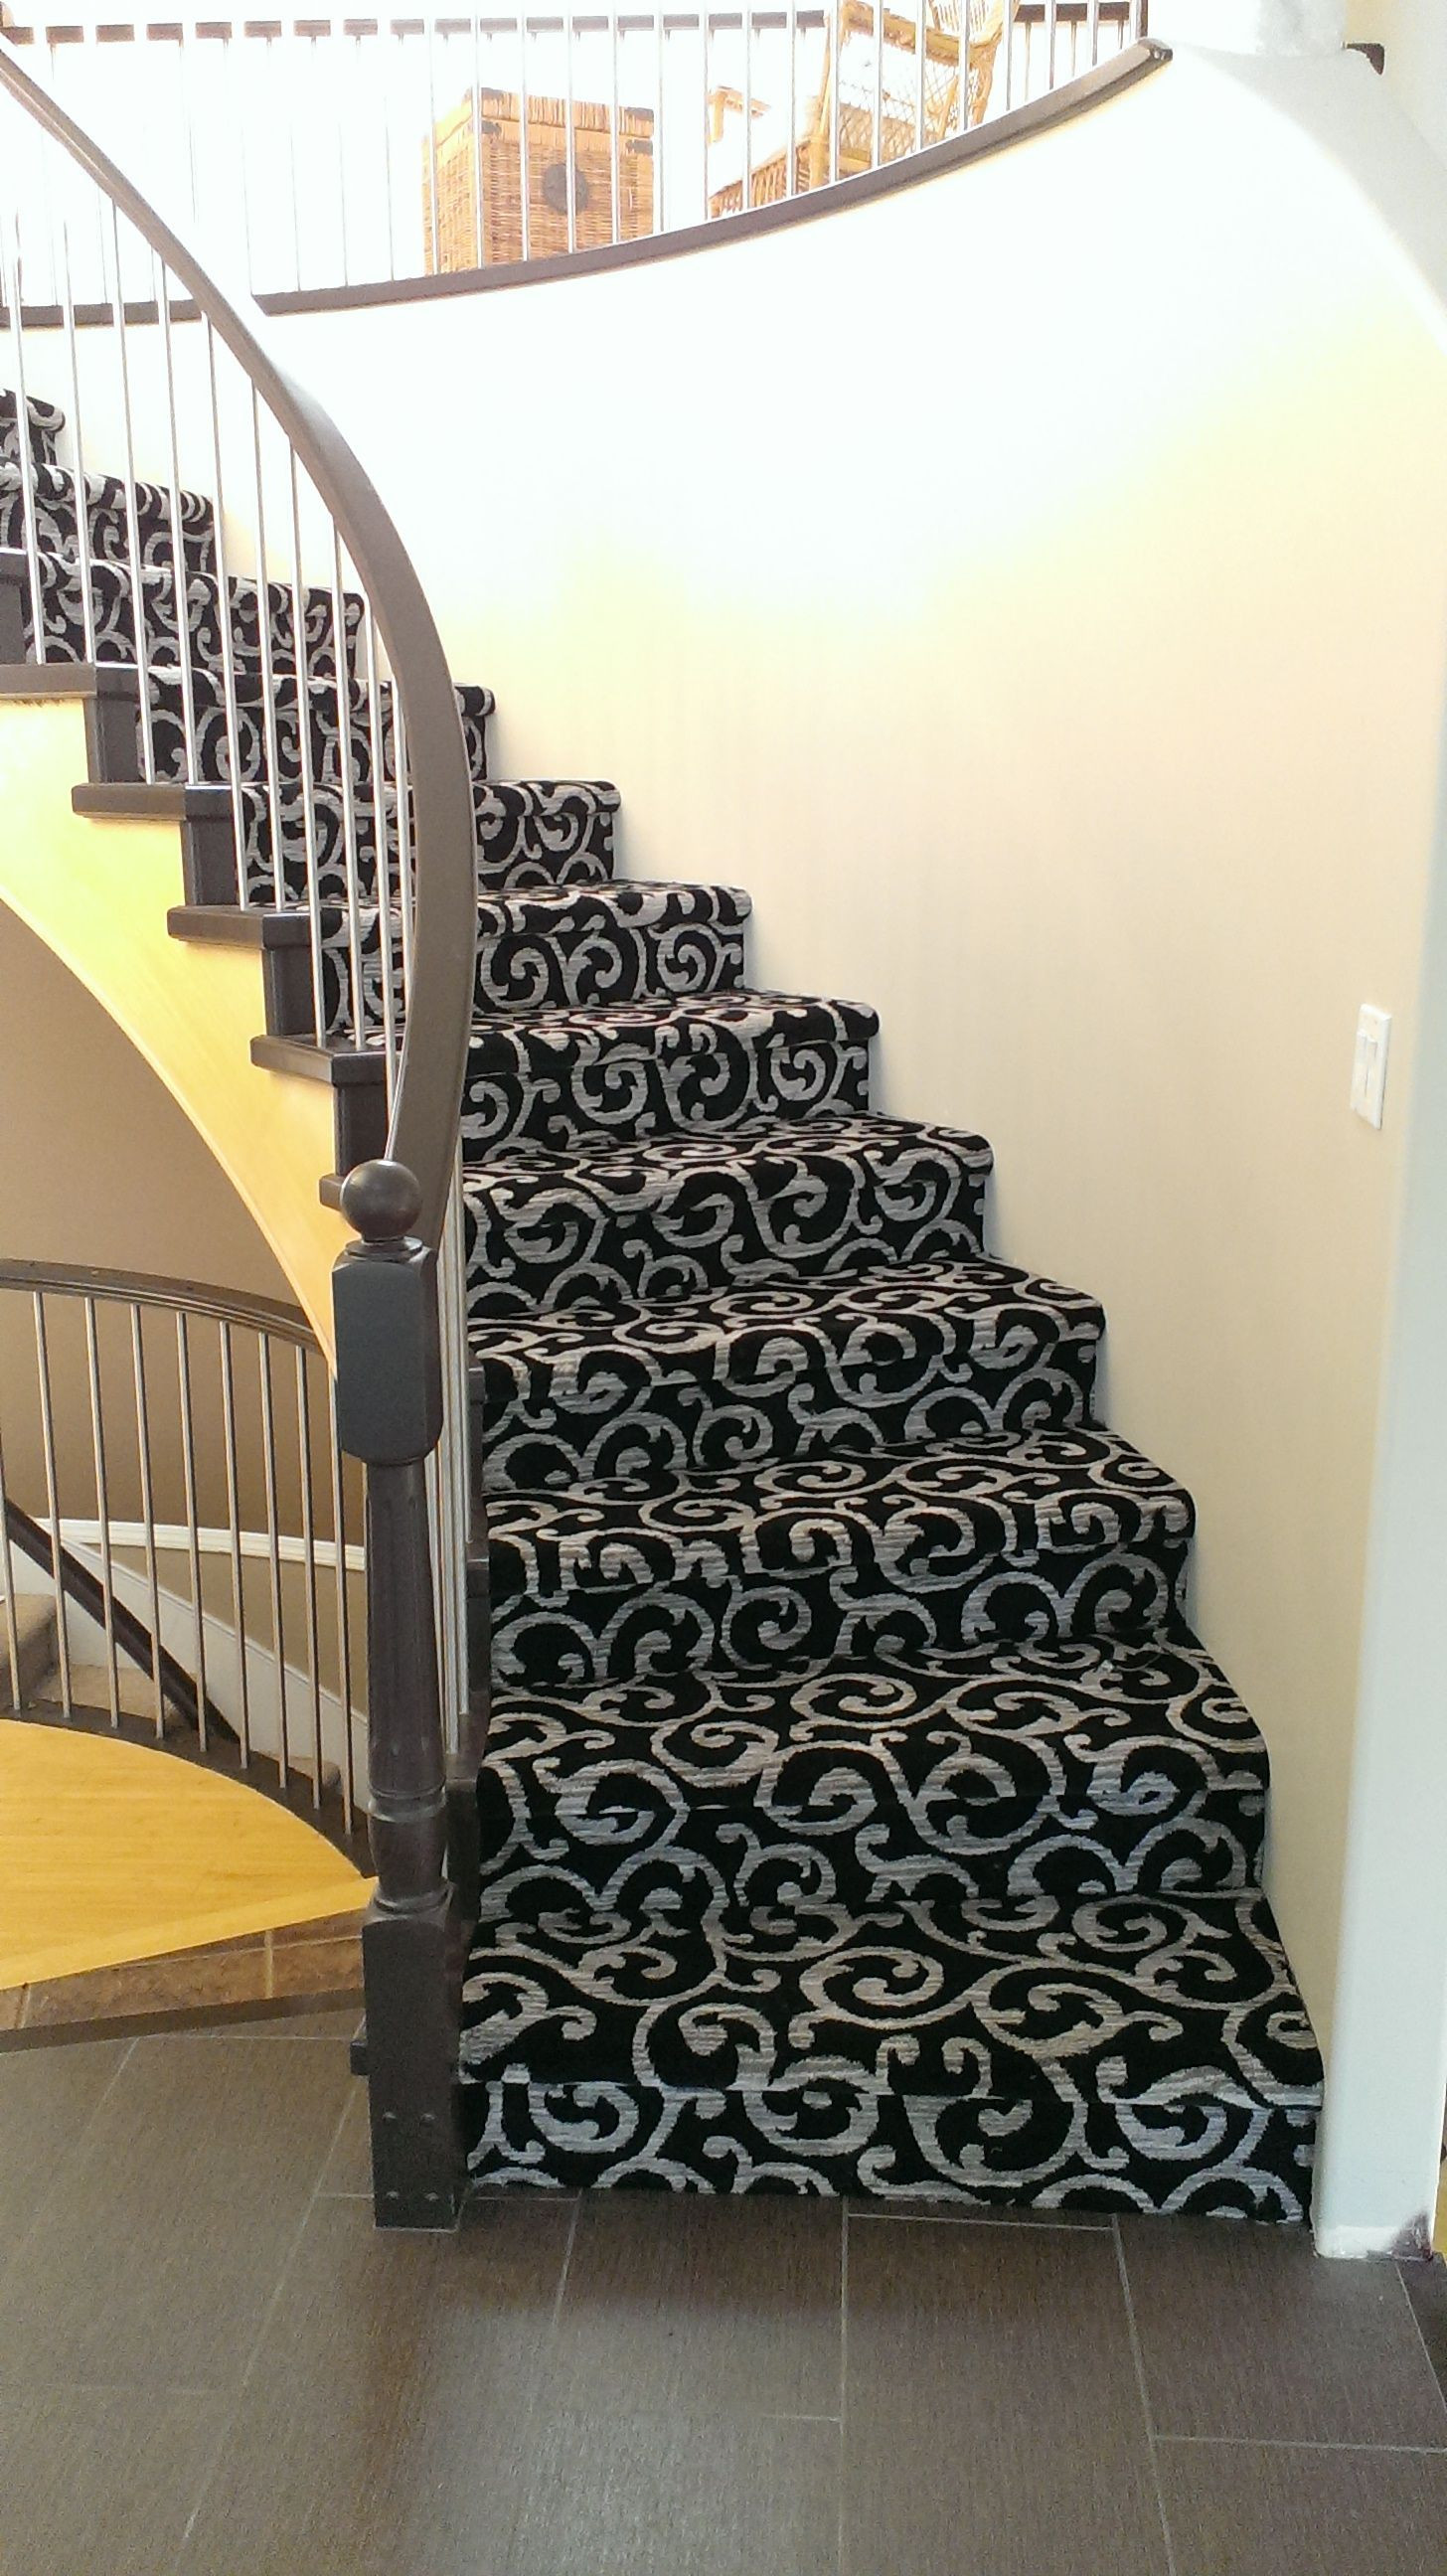 30 Nice Hardwood Flooring Langley 2021 free download hardwood flooring langley of pin by nufloors langley on our projects pinterest carpet stairs with regard to another beautiful patterned kane carpet stair installation by our talented install